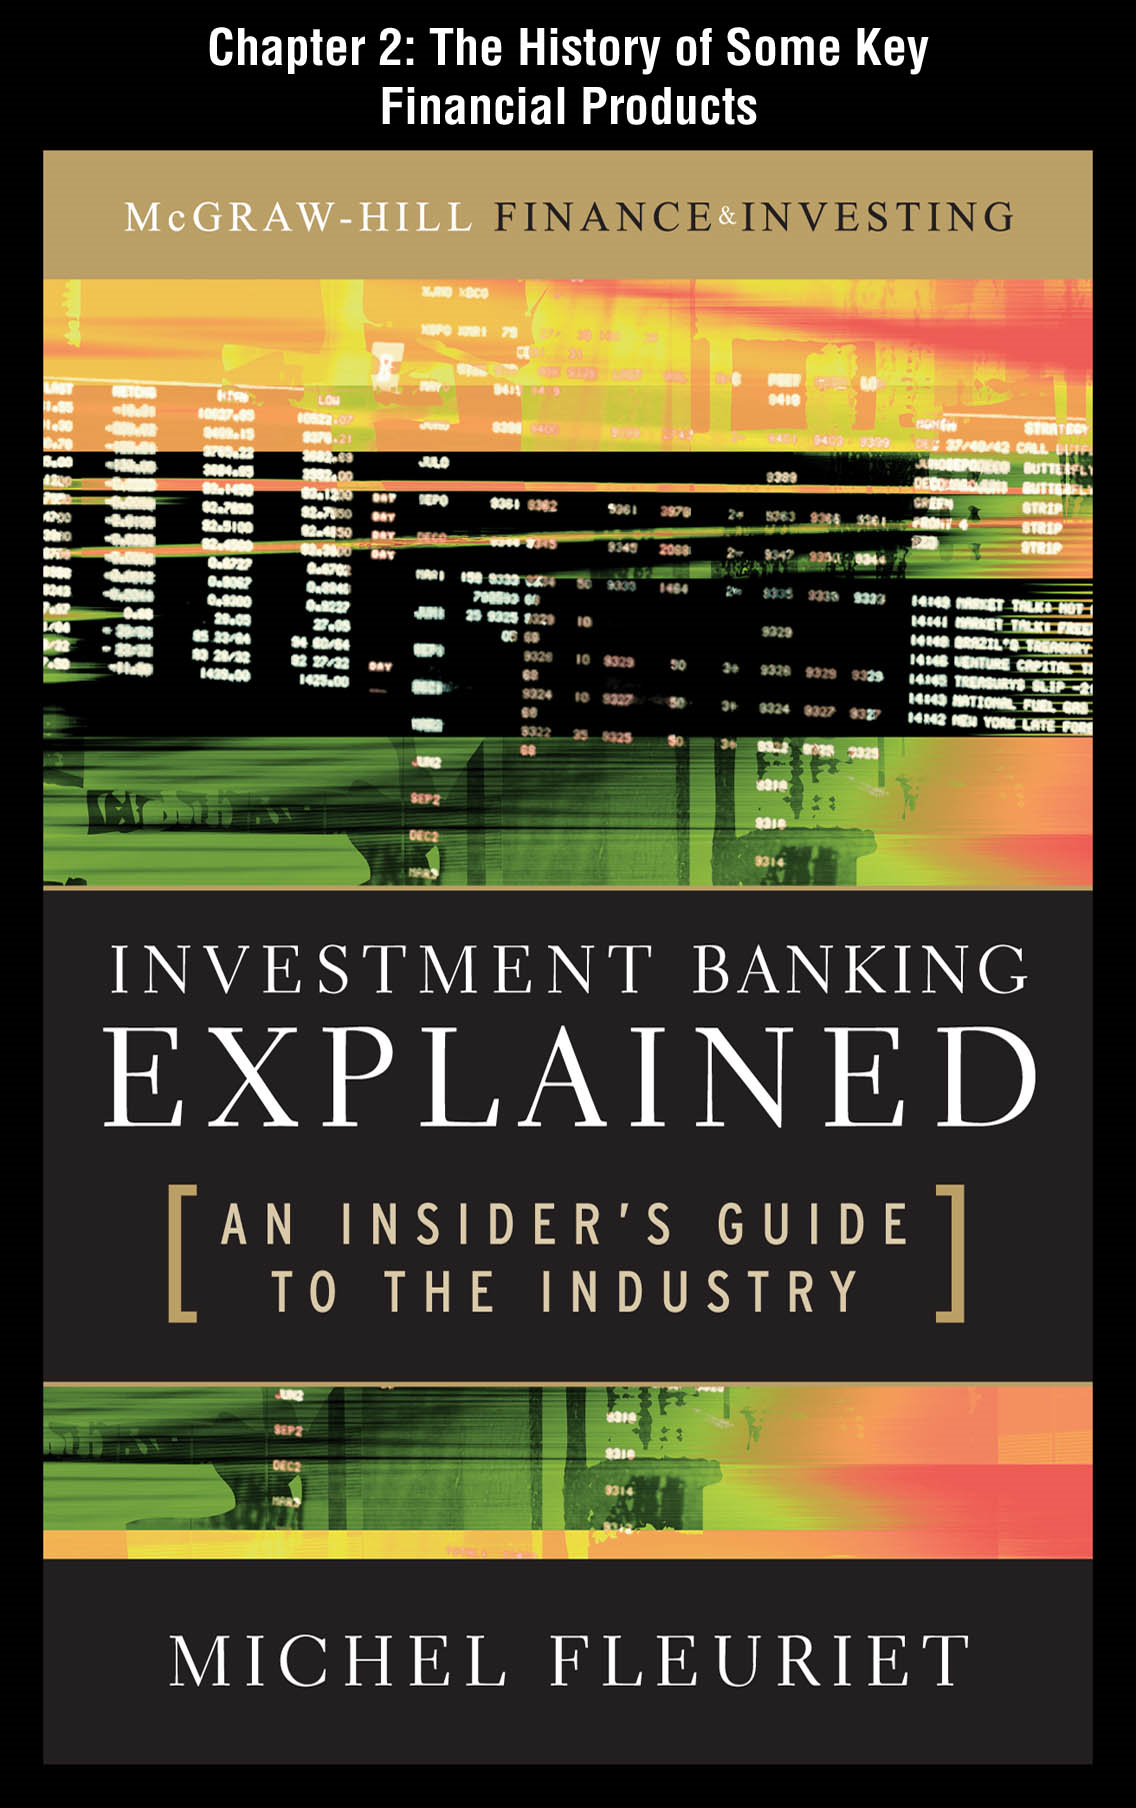 Investment Banking Explained, Chapter 2 - The History of Some Key Financial Products